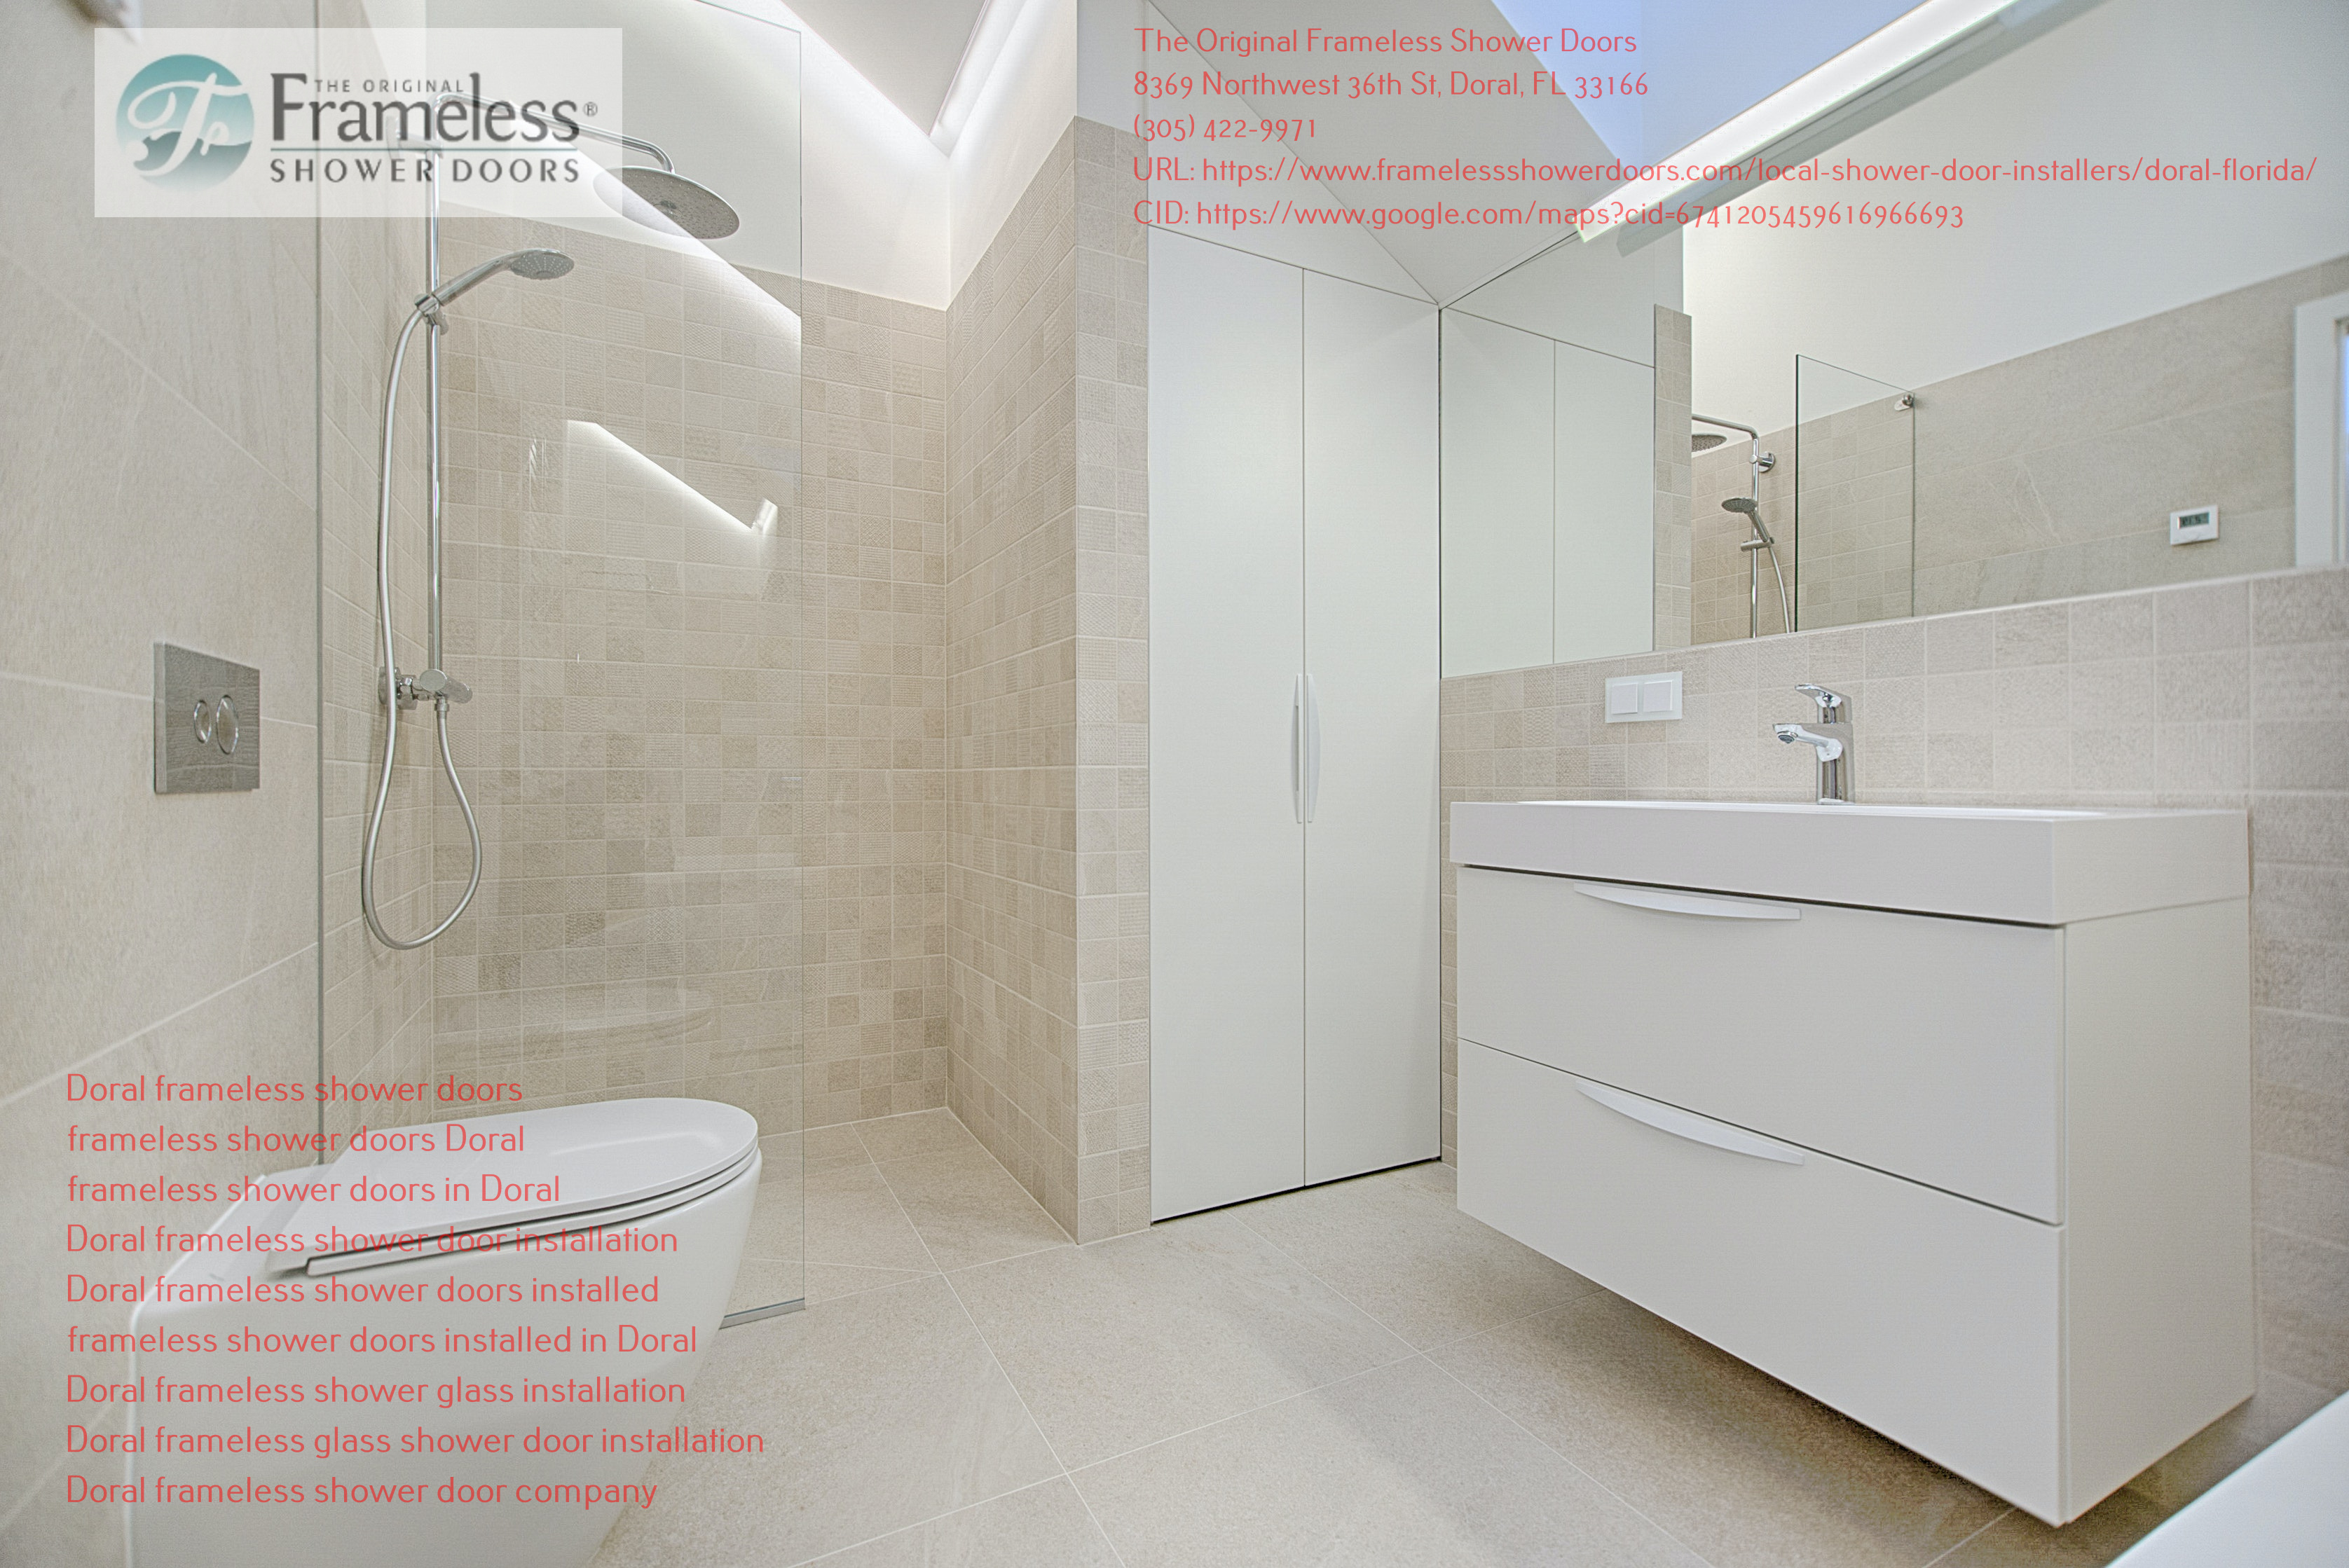 The Original Frameless Shower Doors aims at helping Doral resident have access to quality and trending Shower Doors